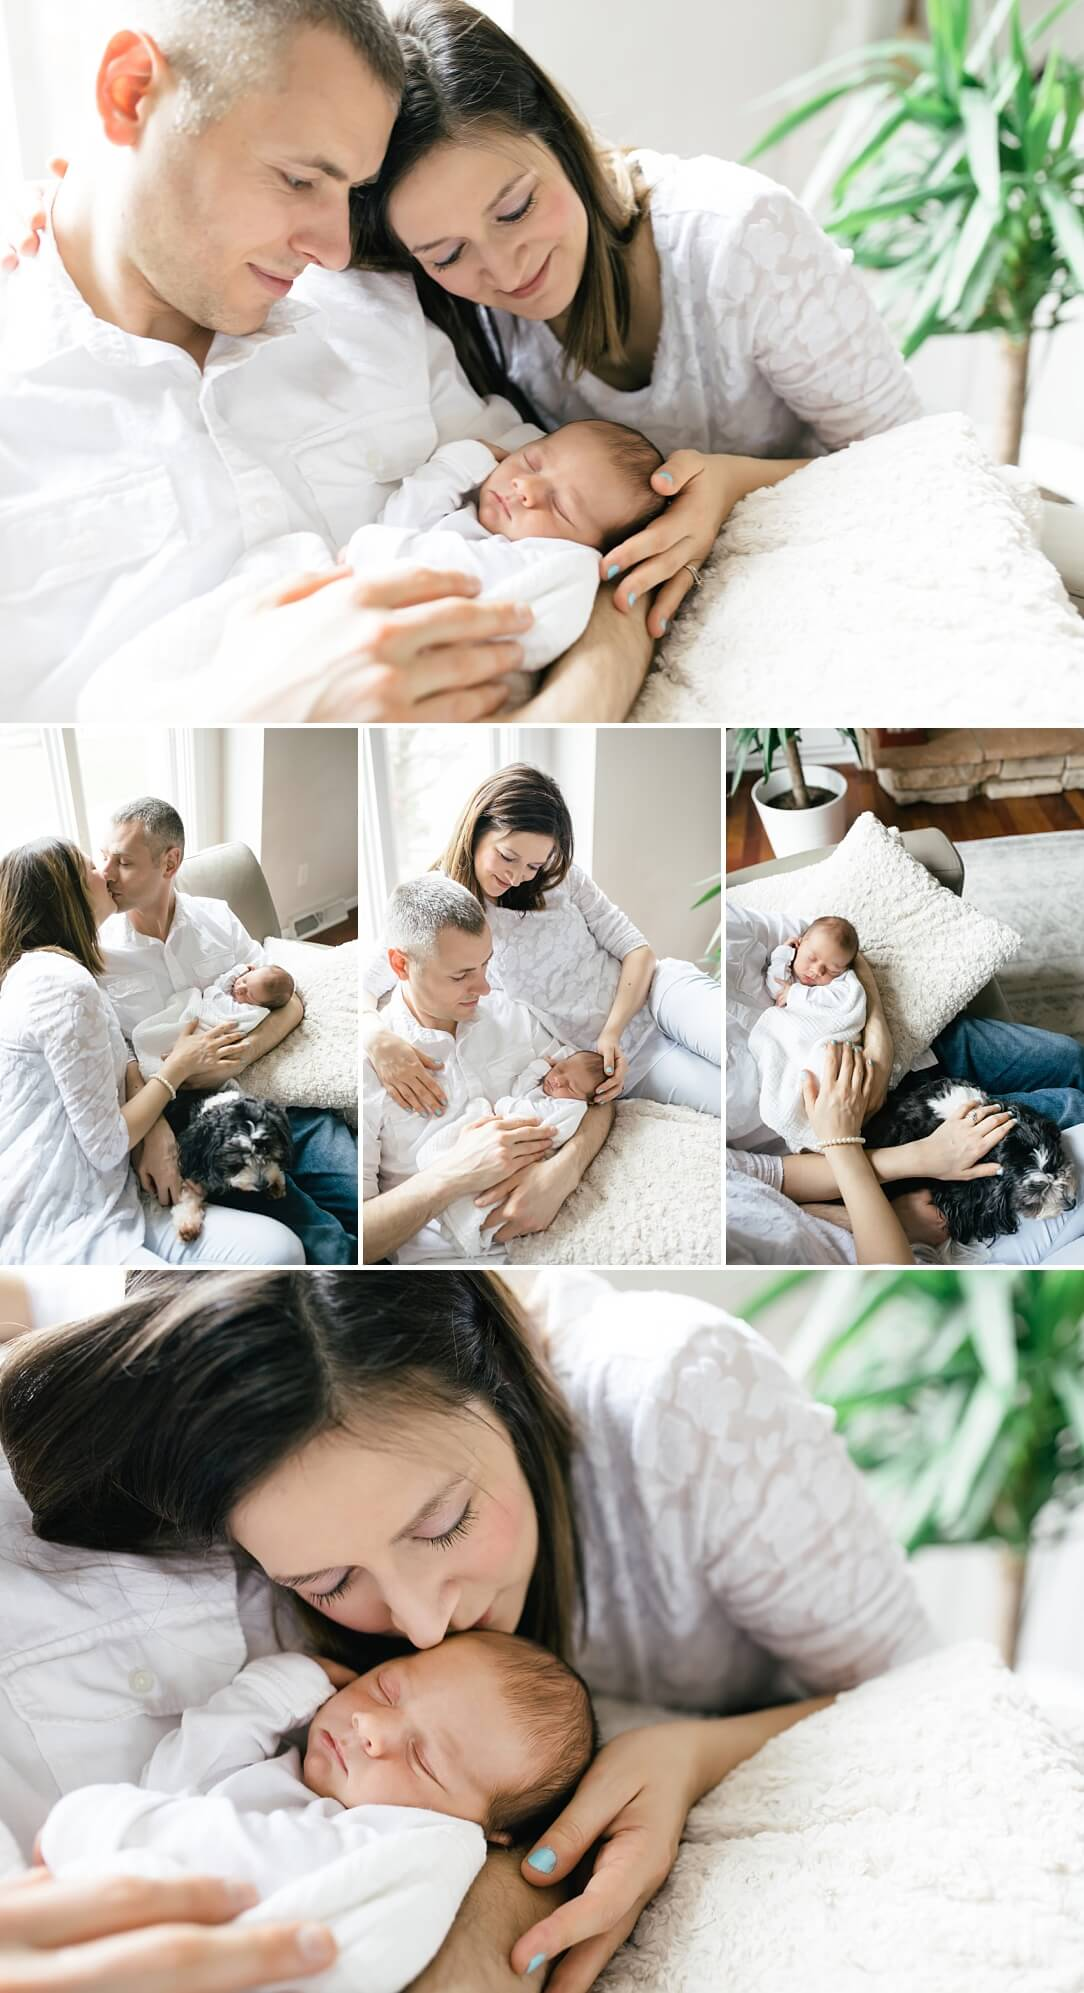 parents holing newborn baby